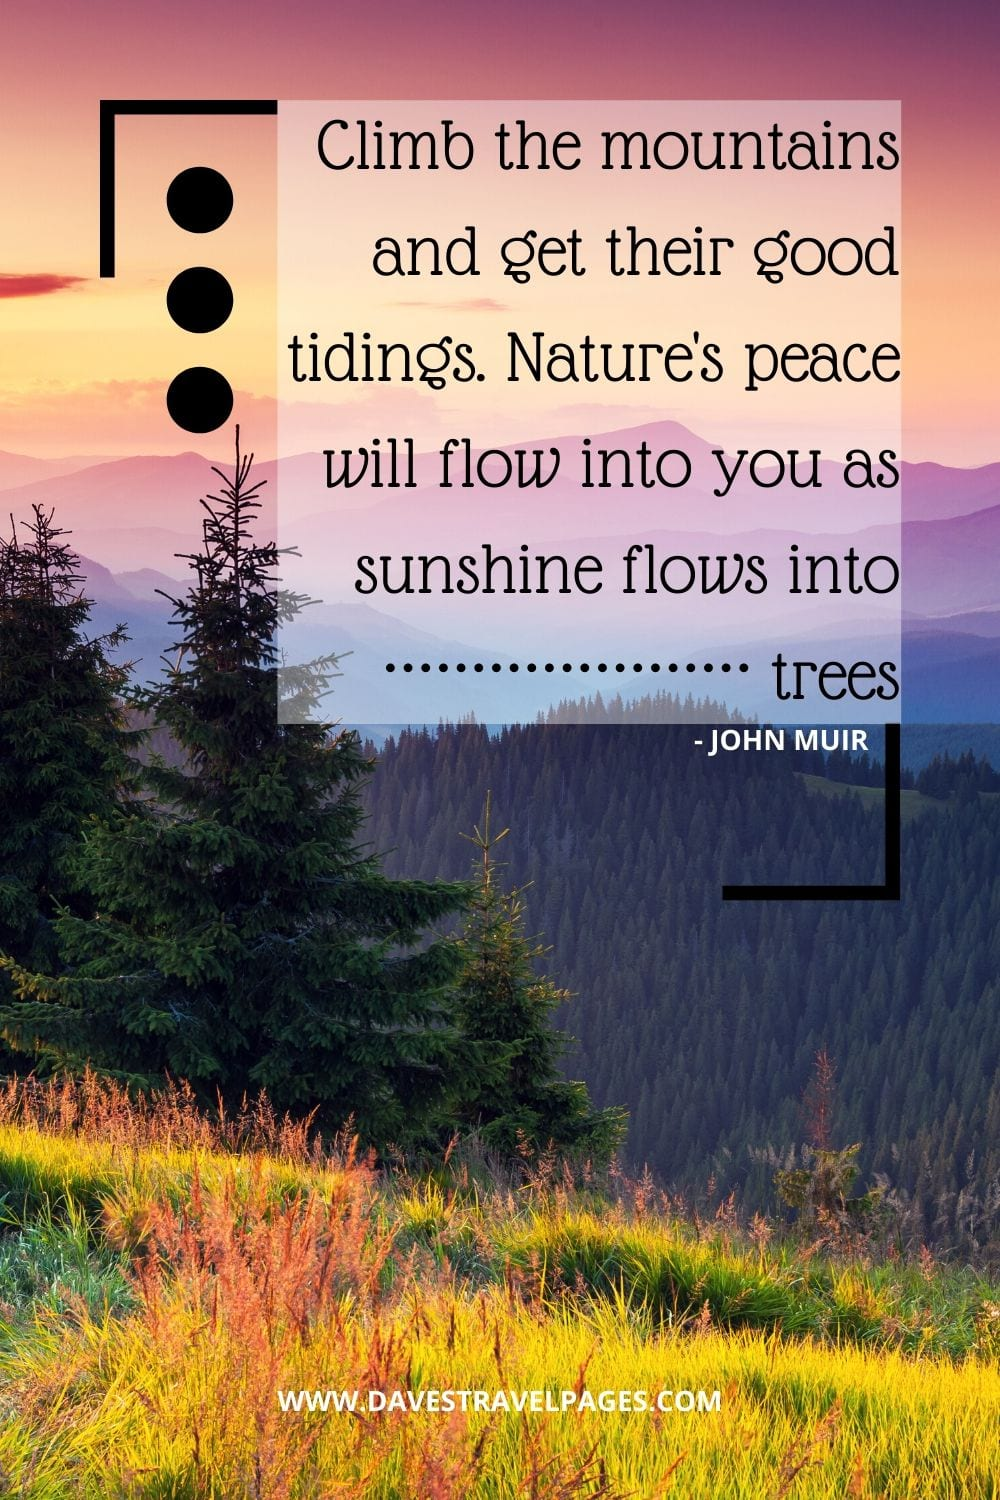 Nature Quotes: Climb the mountains and get their good tidings. Nature's peace will flow into you as sunshine flows into trees - John Muir